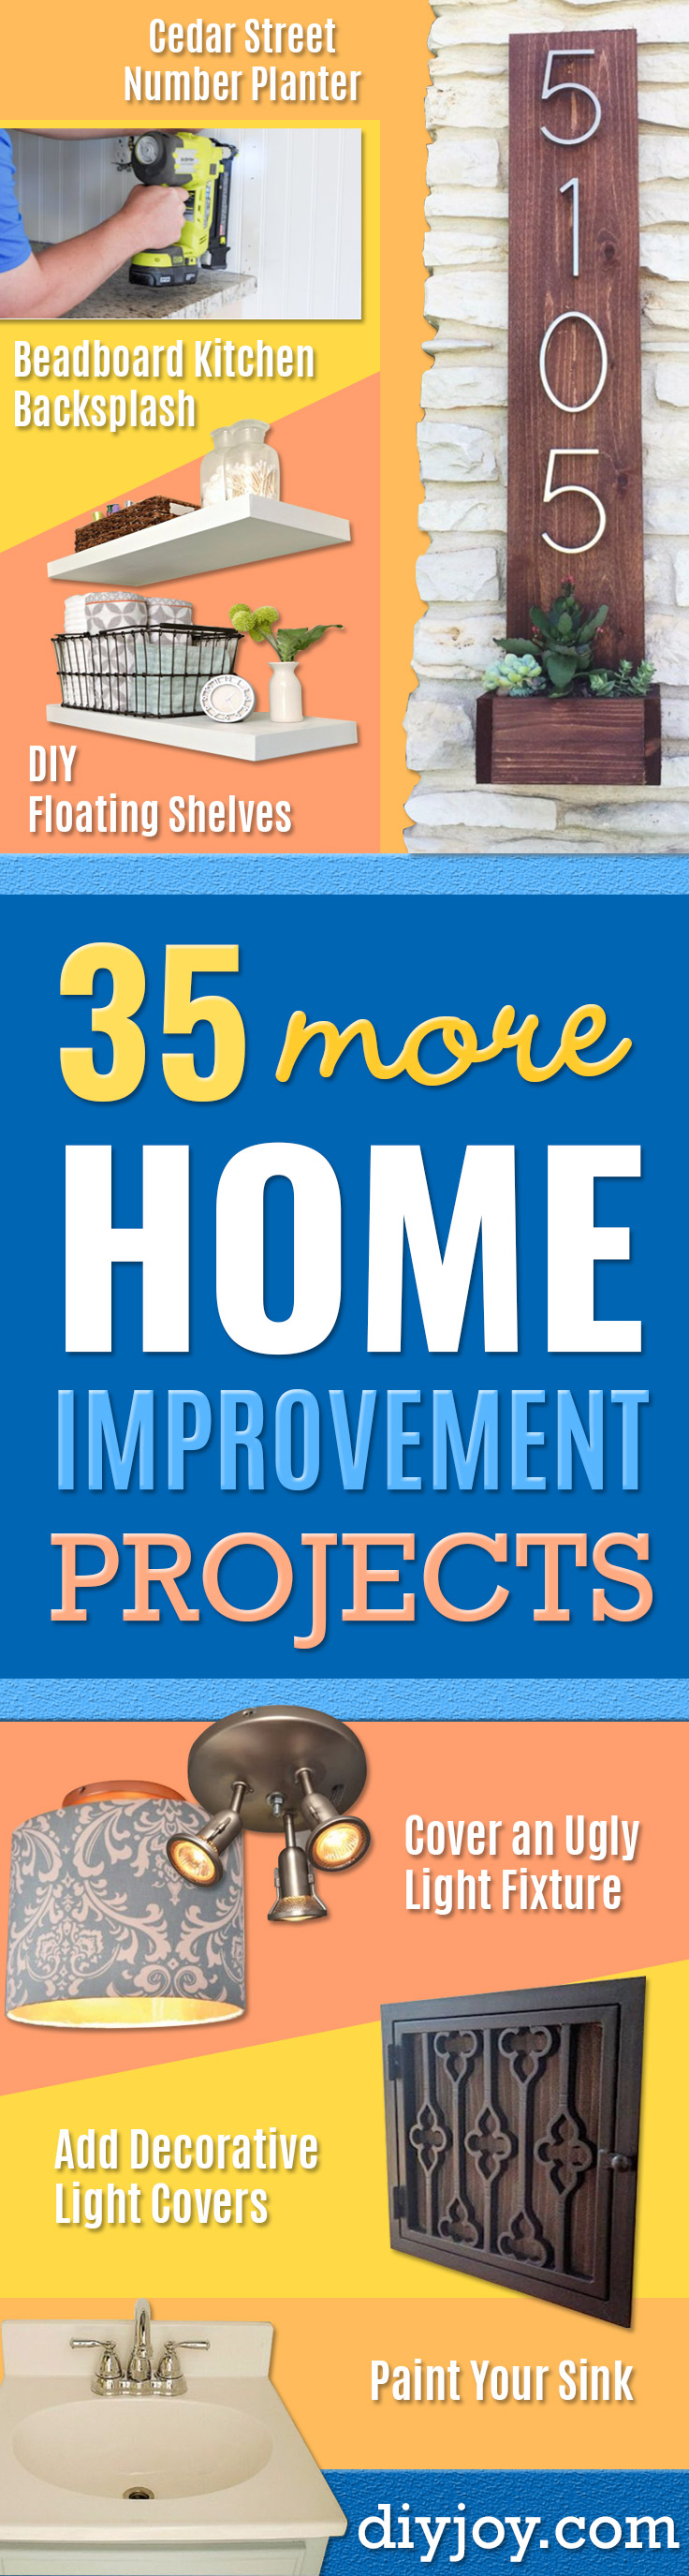 diy home improvement ideas on a budget- Cool DIY Home Improvement Hacks, Easy and Cheap Do It Yourself Tutorials for Updating and Renovating Your House - Home Decor Tips and Tricks, Remodeling and Decorating Hacks - DIY Projects